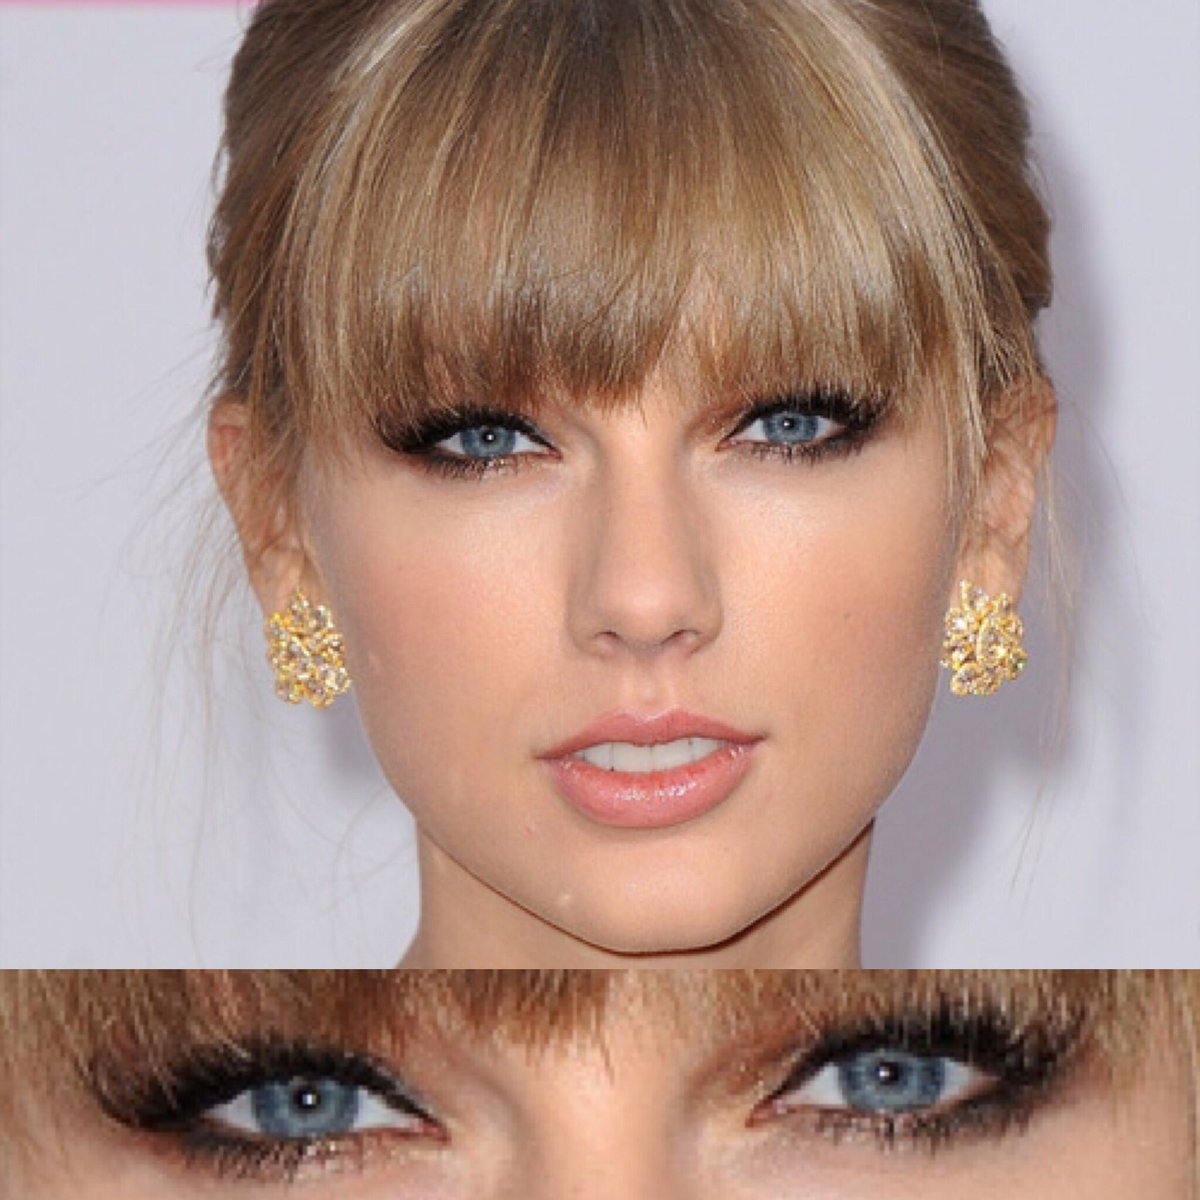 Taylor Swift Polls On Twitter Which Eye Makeup Vote Below Taylorswiftnow Taylorswift Swifties Redcarpet Makeup Eyeliner Eyeshadow Mascara Https T Co Qy7k3lr4p4